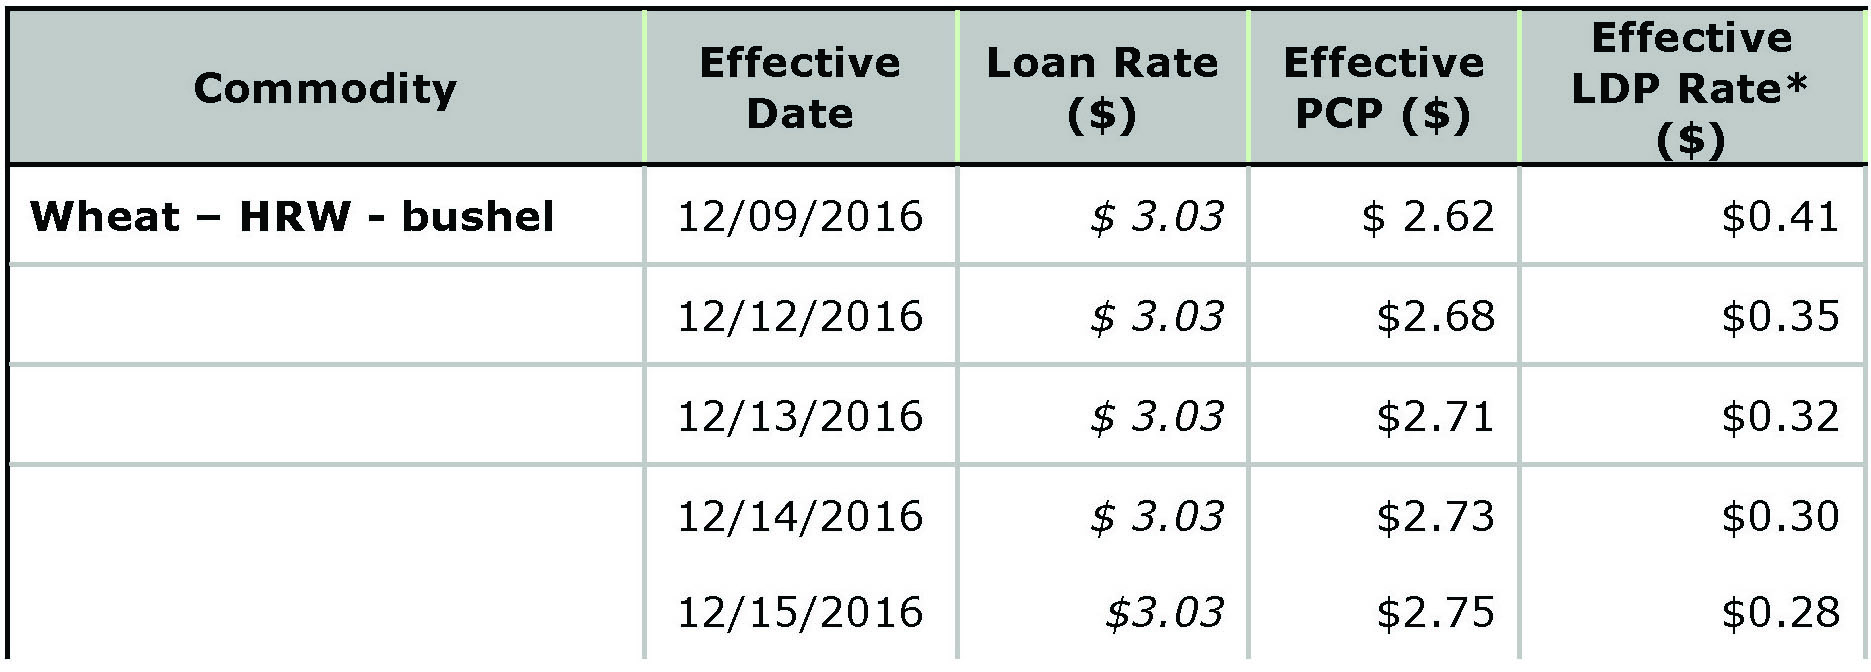 USDA Loan Deficiency Payment - December 16, 2016 - wheat